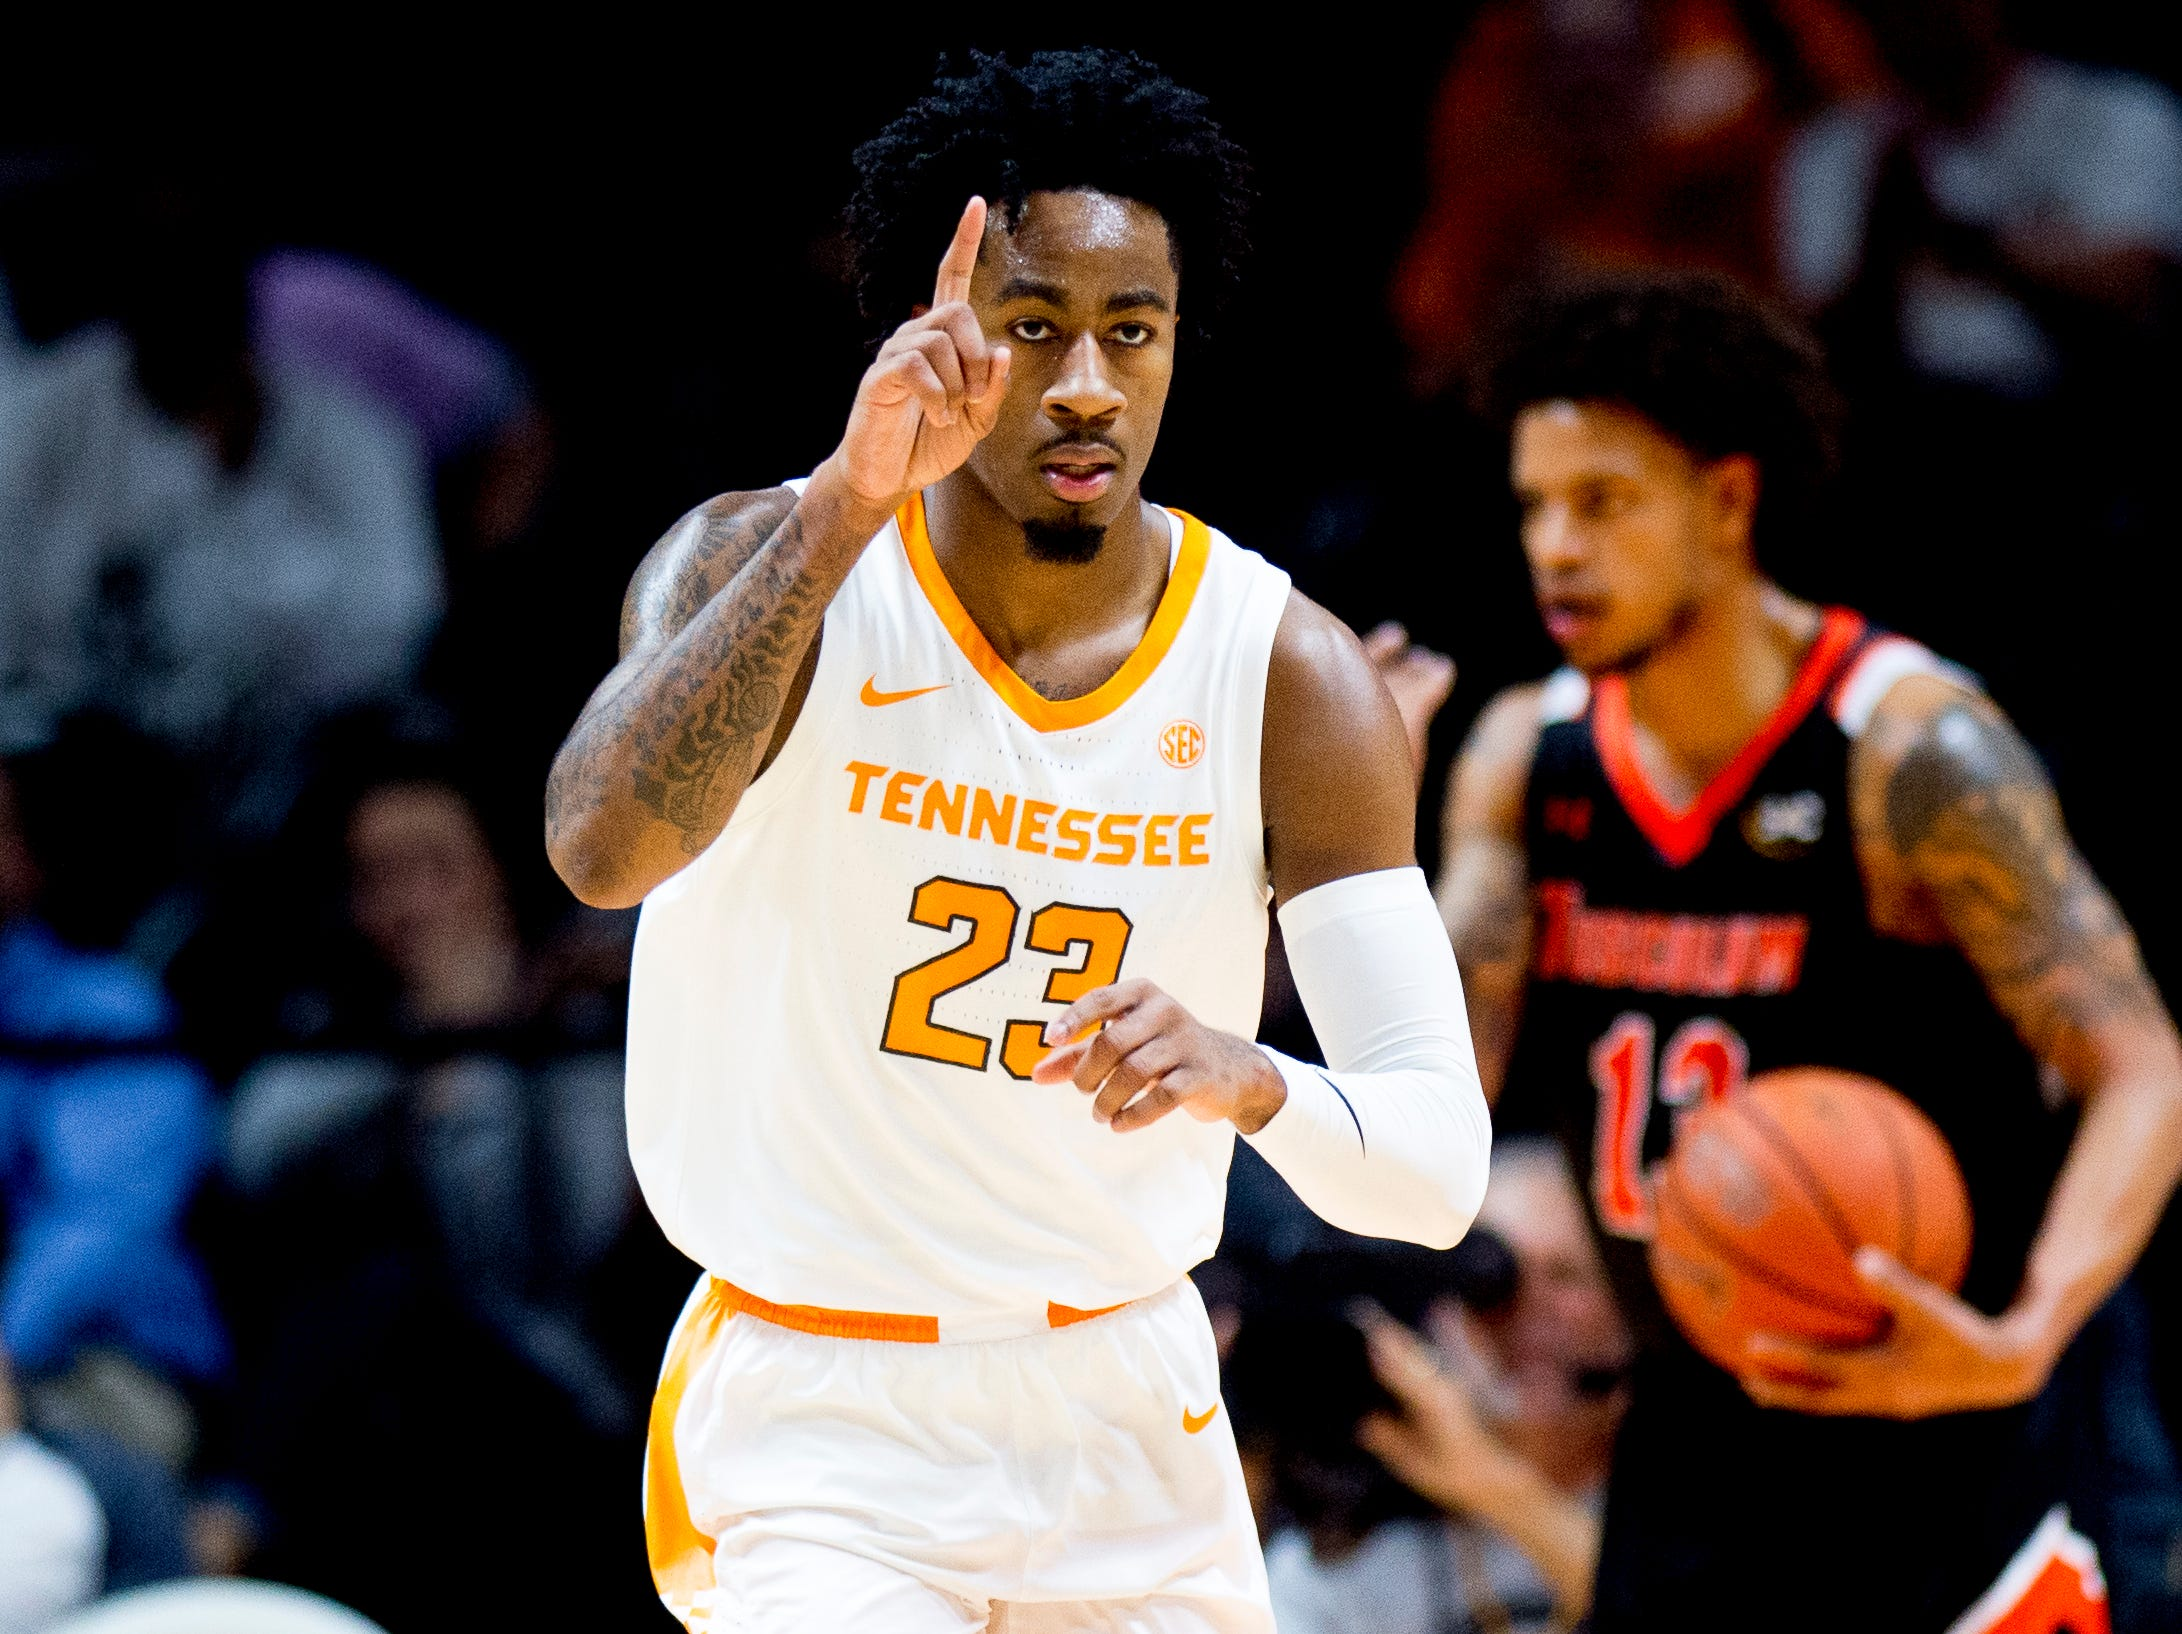 Tennessee guard Jordan Bowden (23) reacts after making a dunk during a game between Tennessee and Tusculum at Thompson-Boling Arena in Knoxville, Tennessee on Wednesday, October 31, 2018.